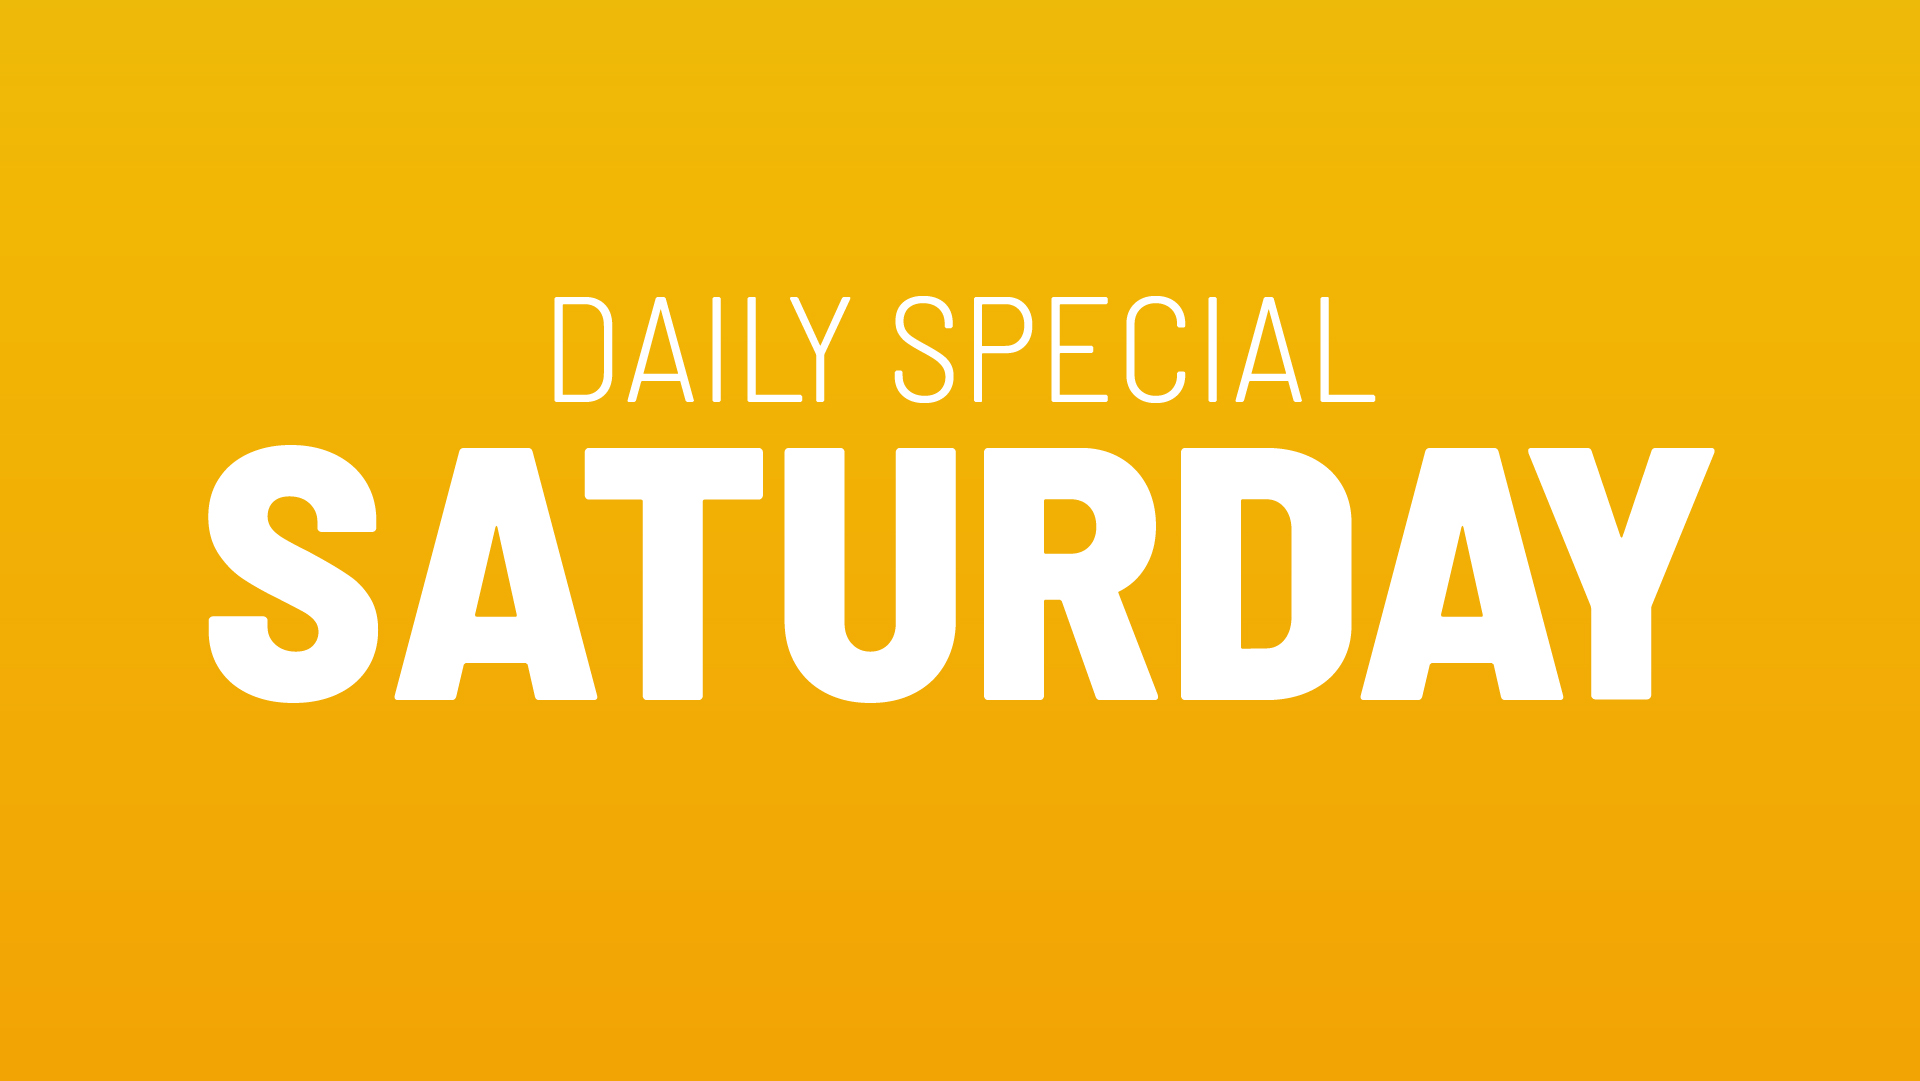 Saturday's Daily Special